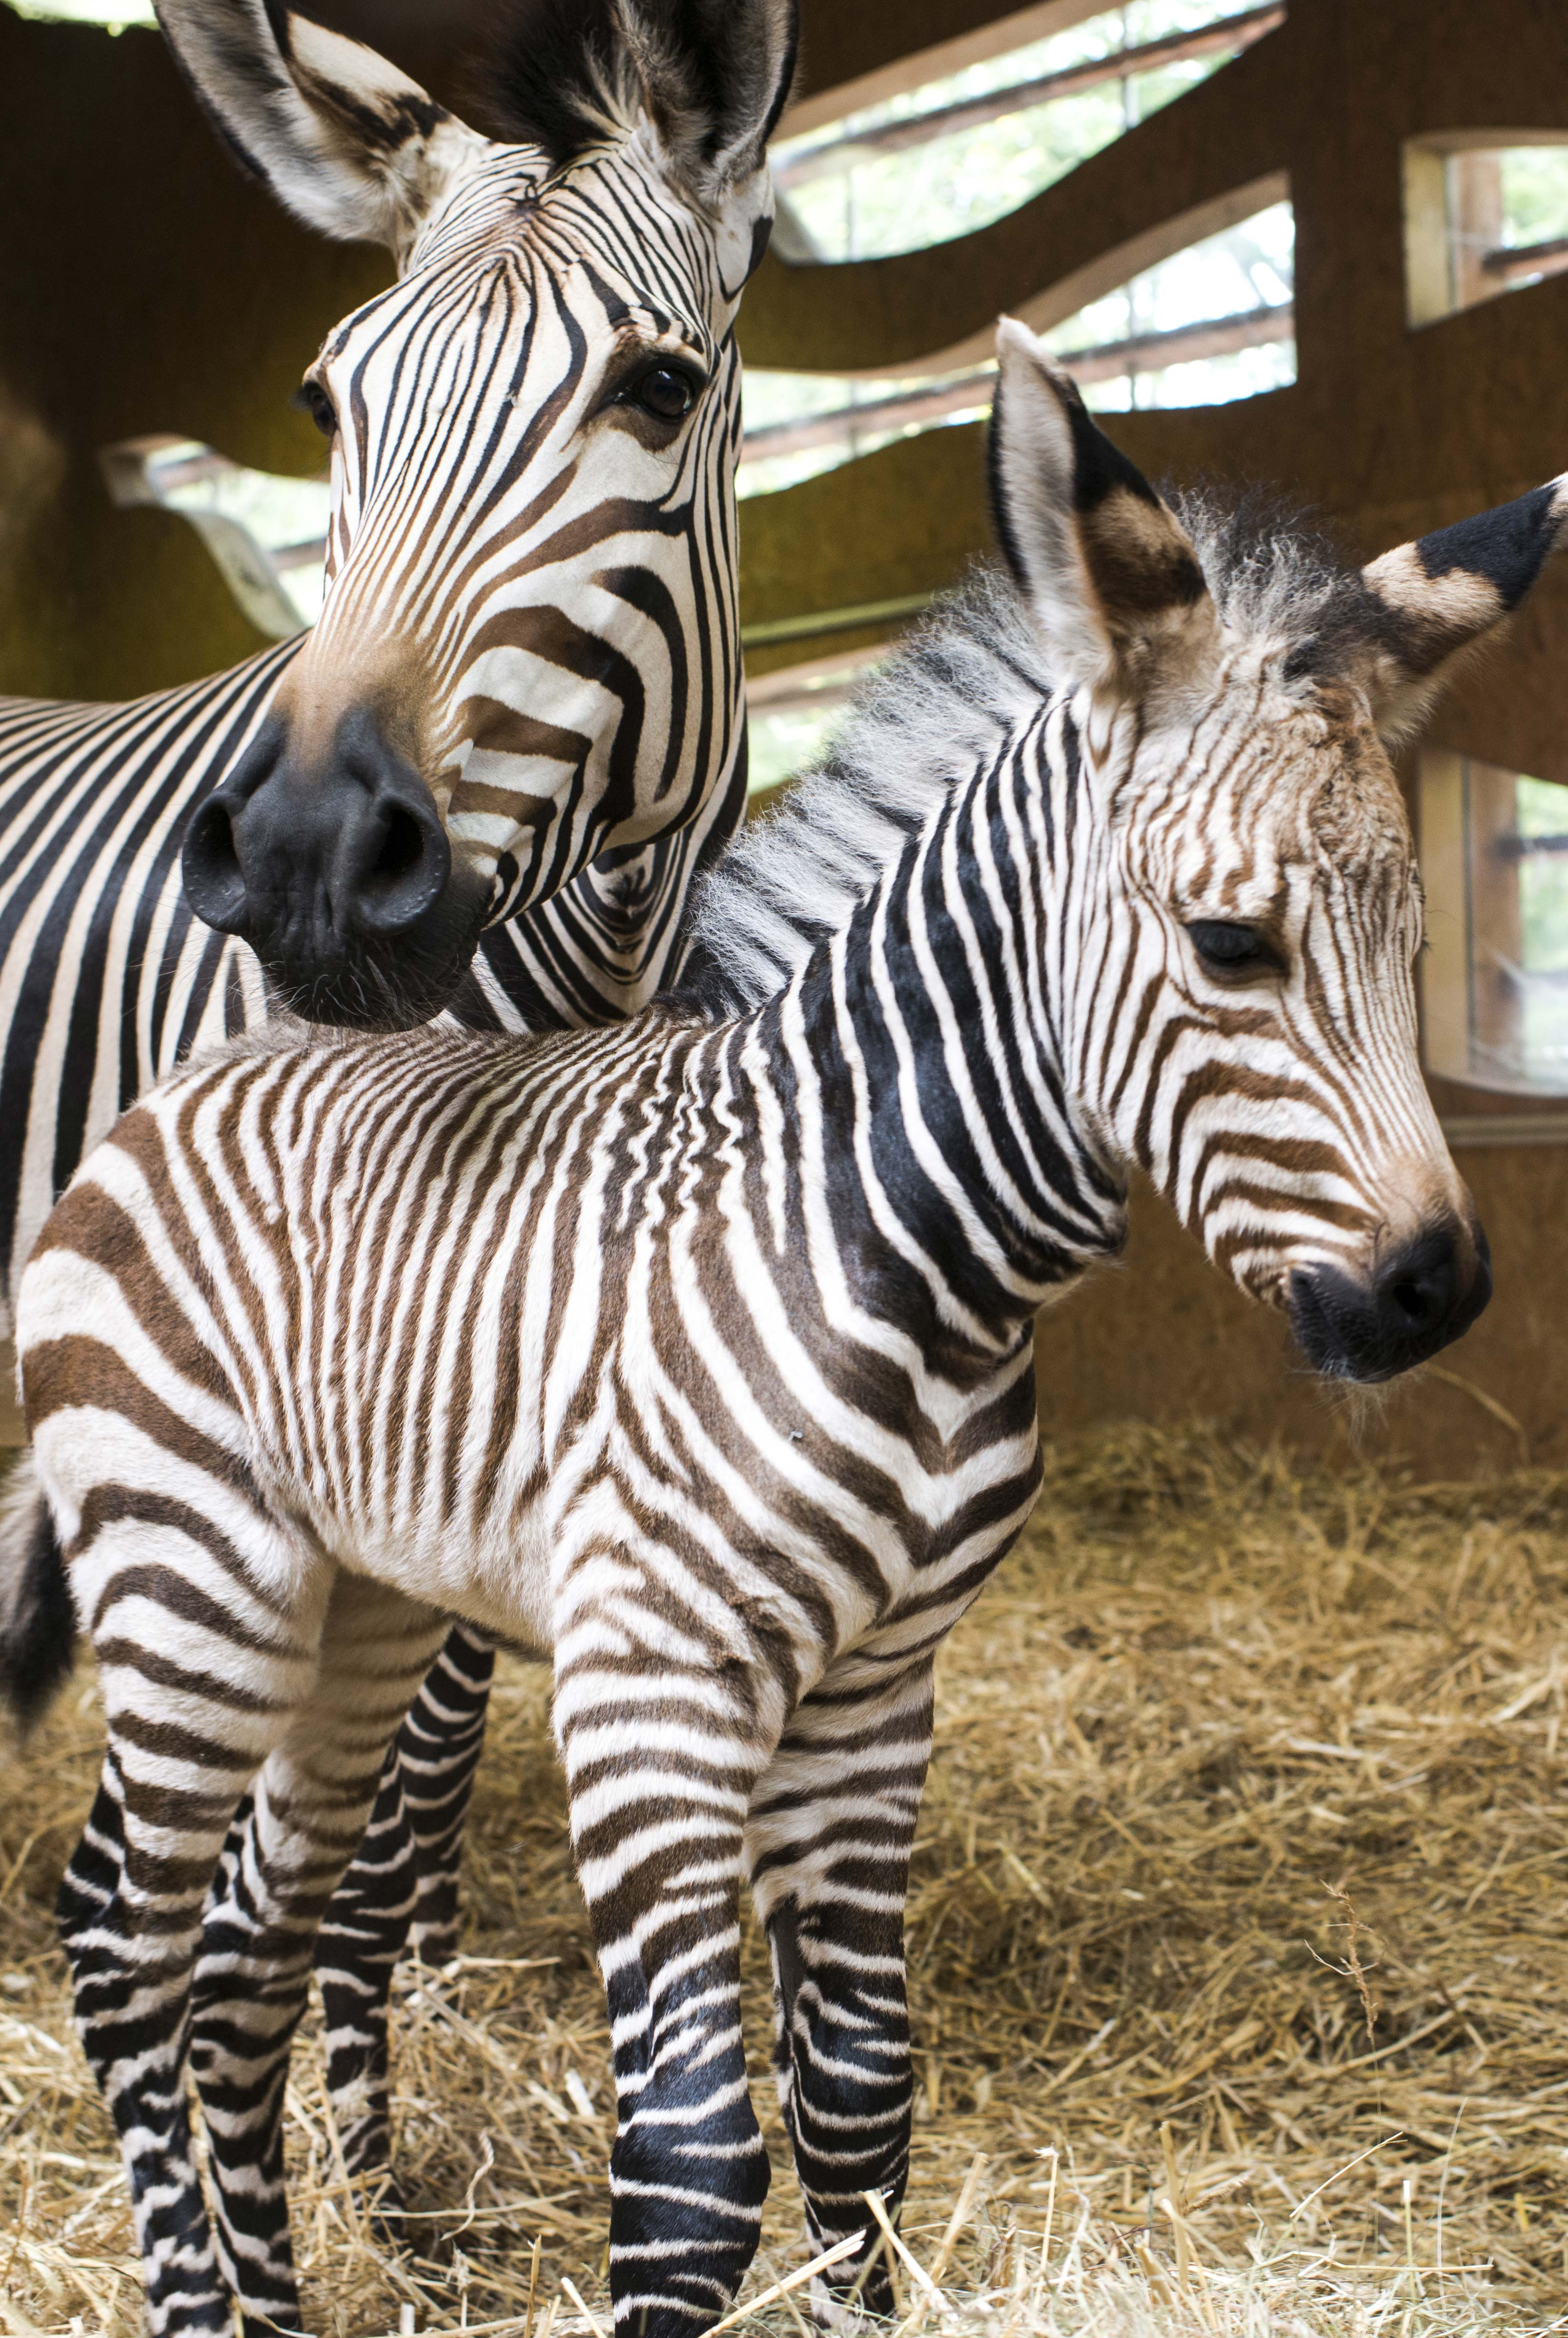 A newborn Hartmann's Mountain zebra with his mother in the Zoo of the Parc de la Tete d'Or in Lyon. France on October 31, 2013.